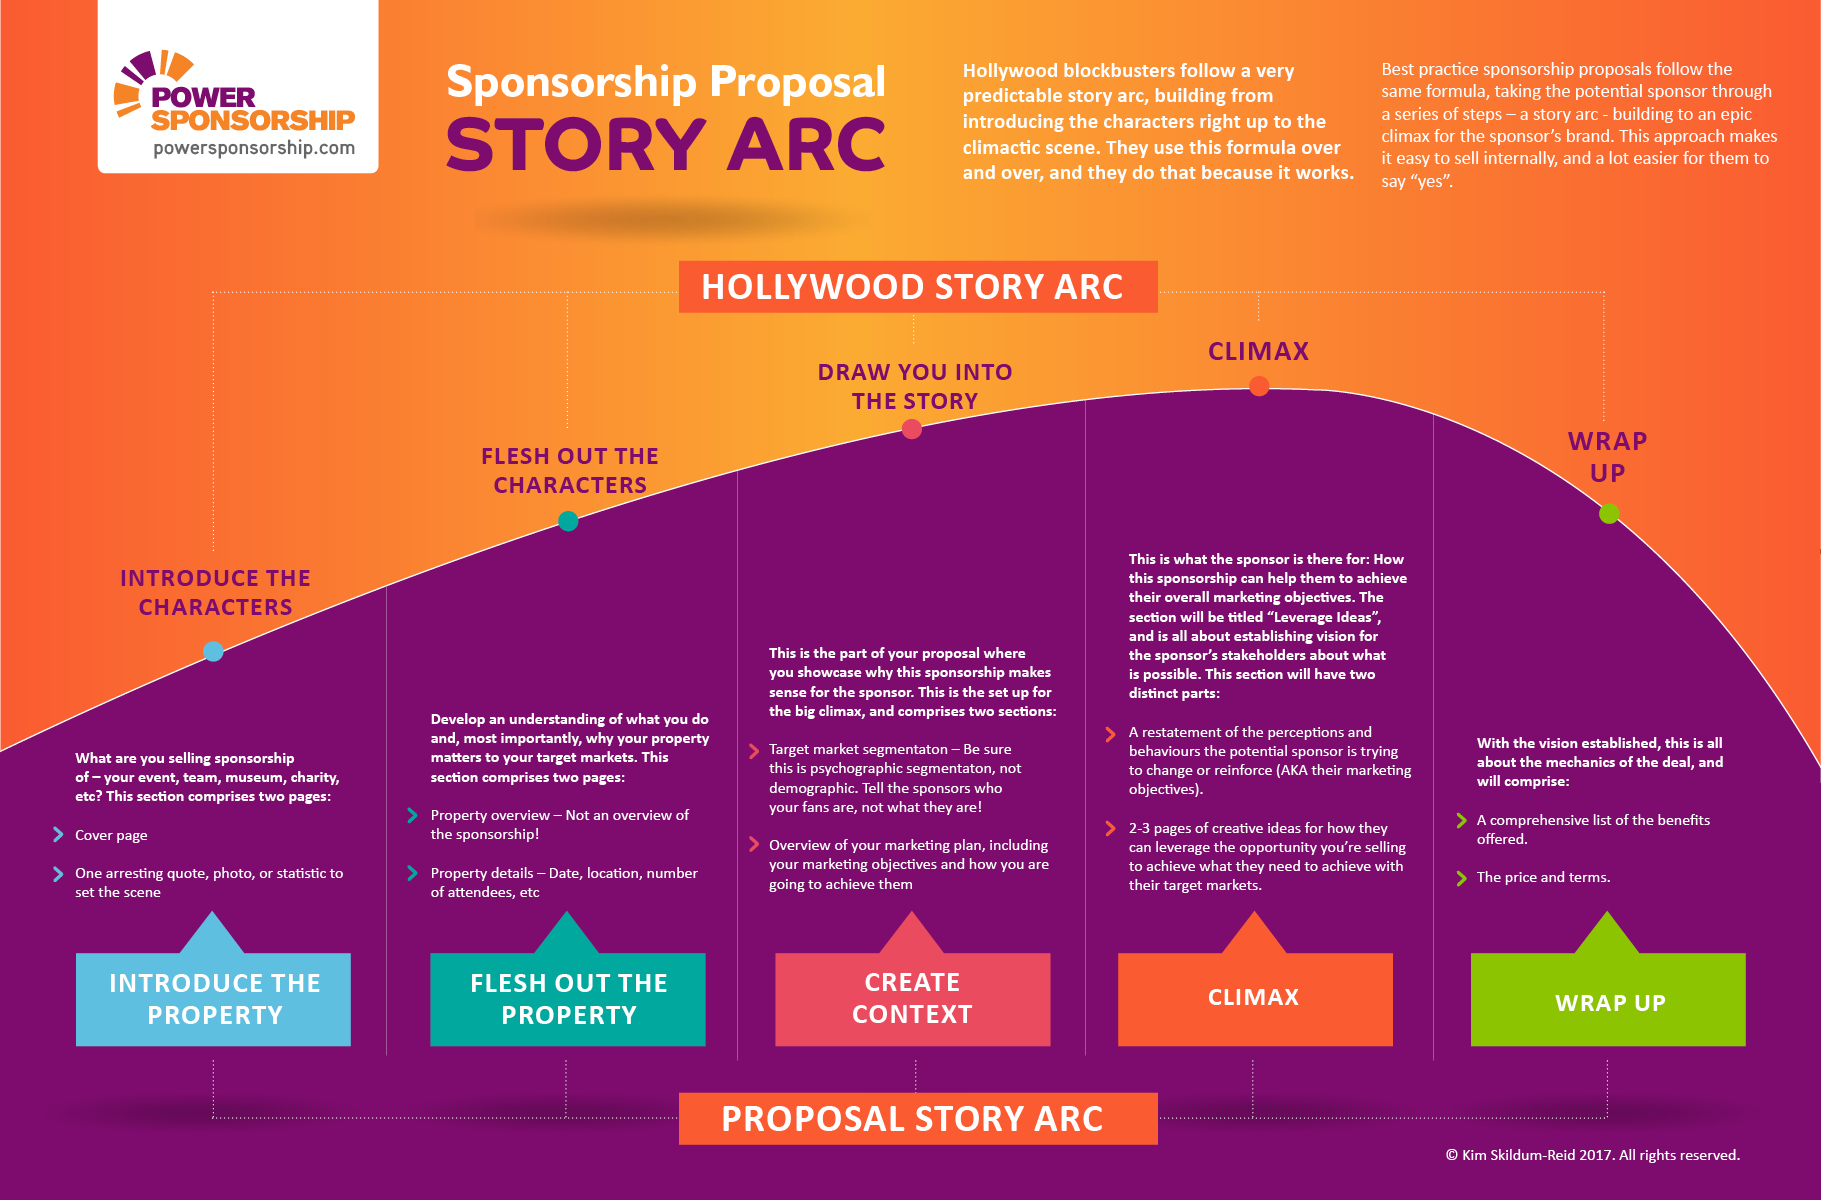 How a Great Sponsorship Proposal Follows a Hollywood Story